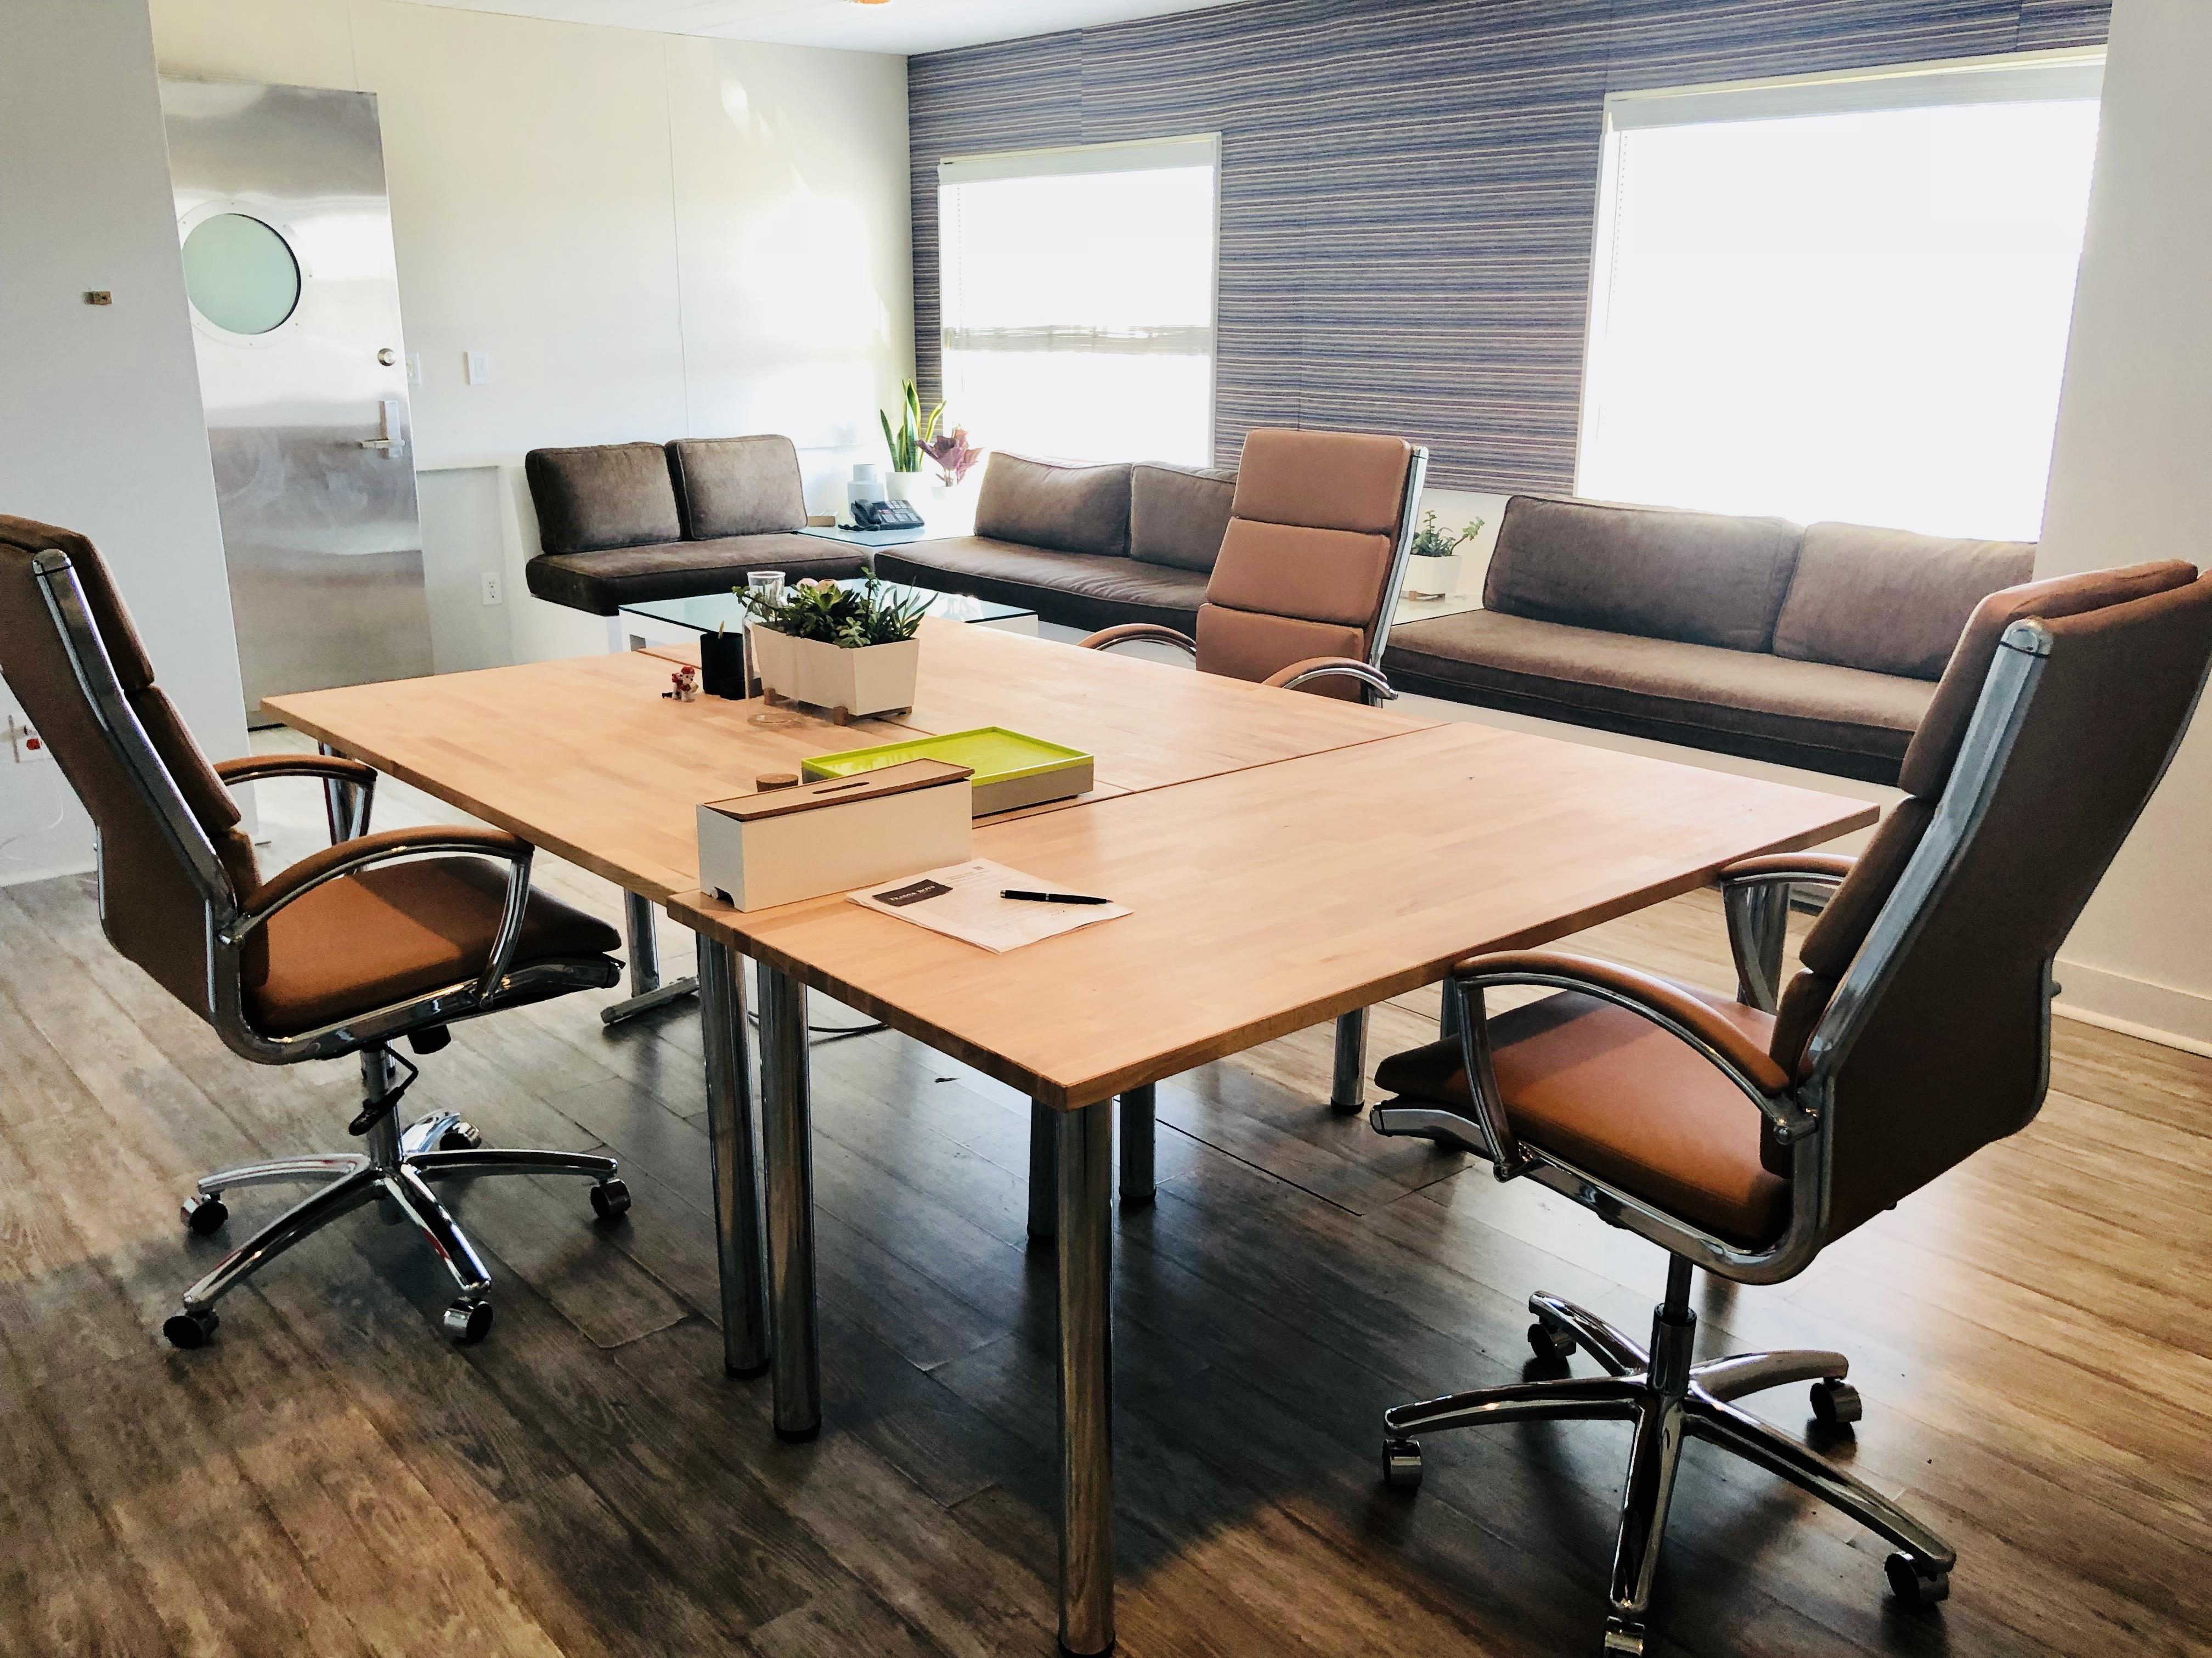 Beach House CoWork - Office for 5-6 Person